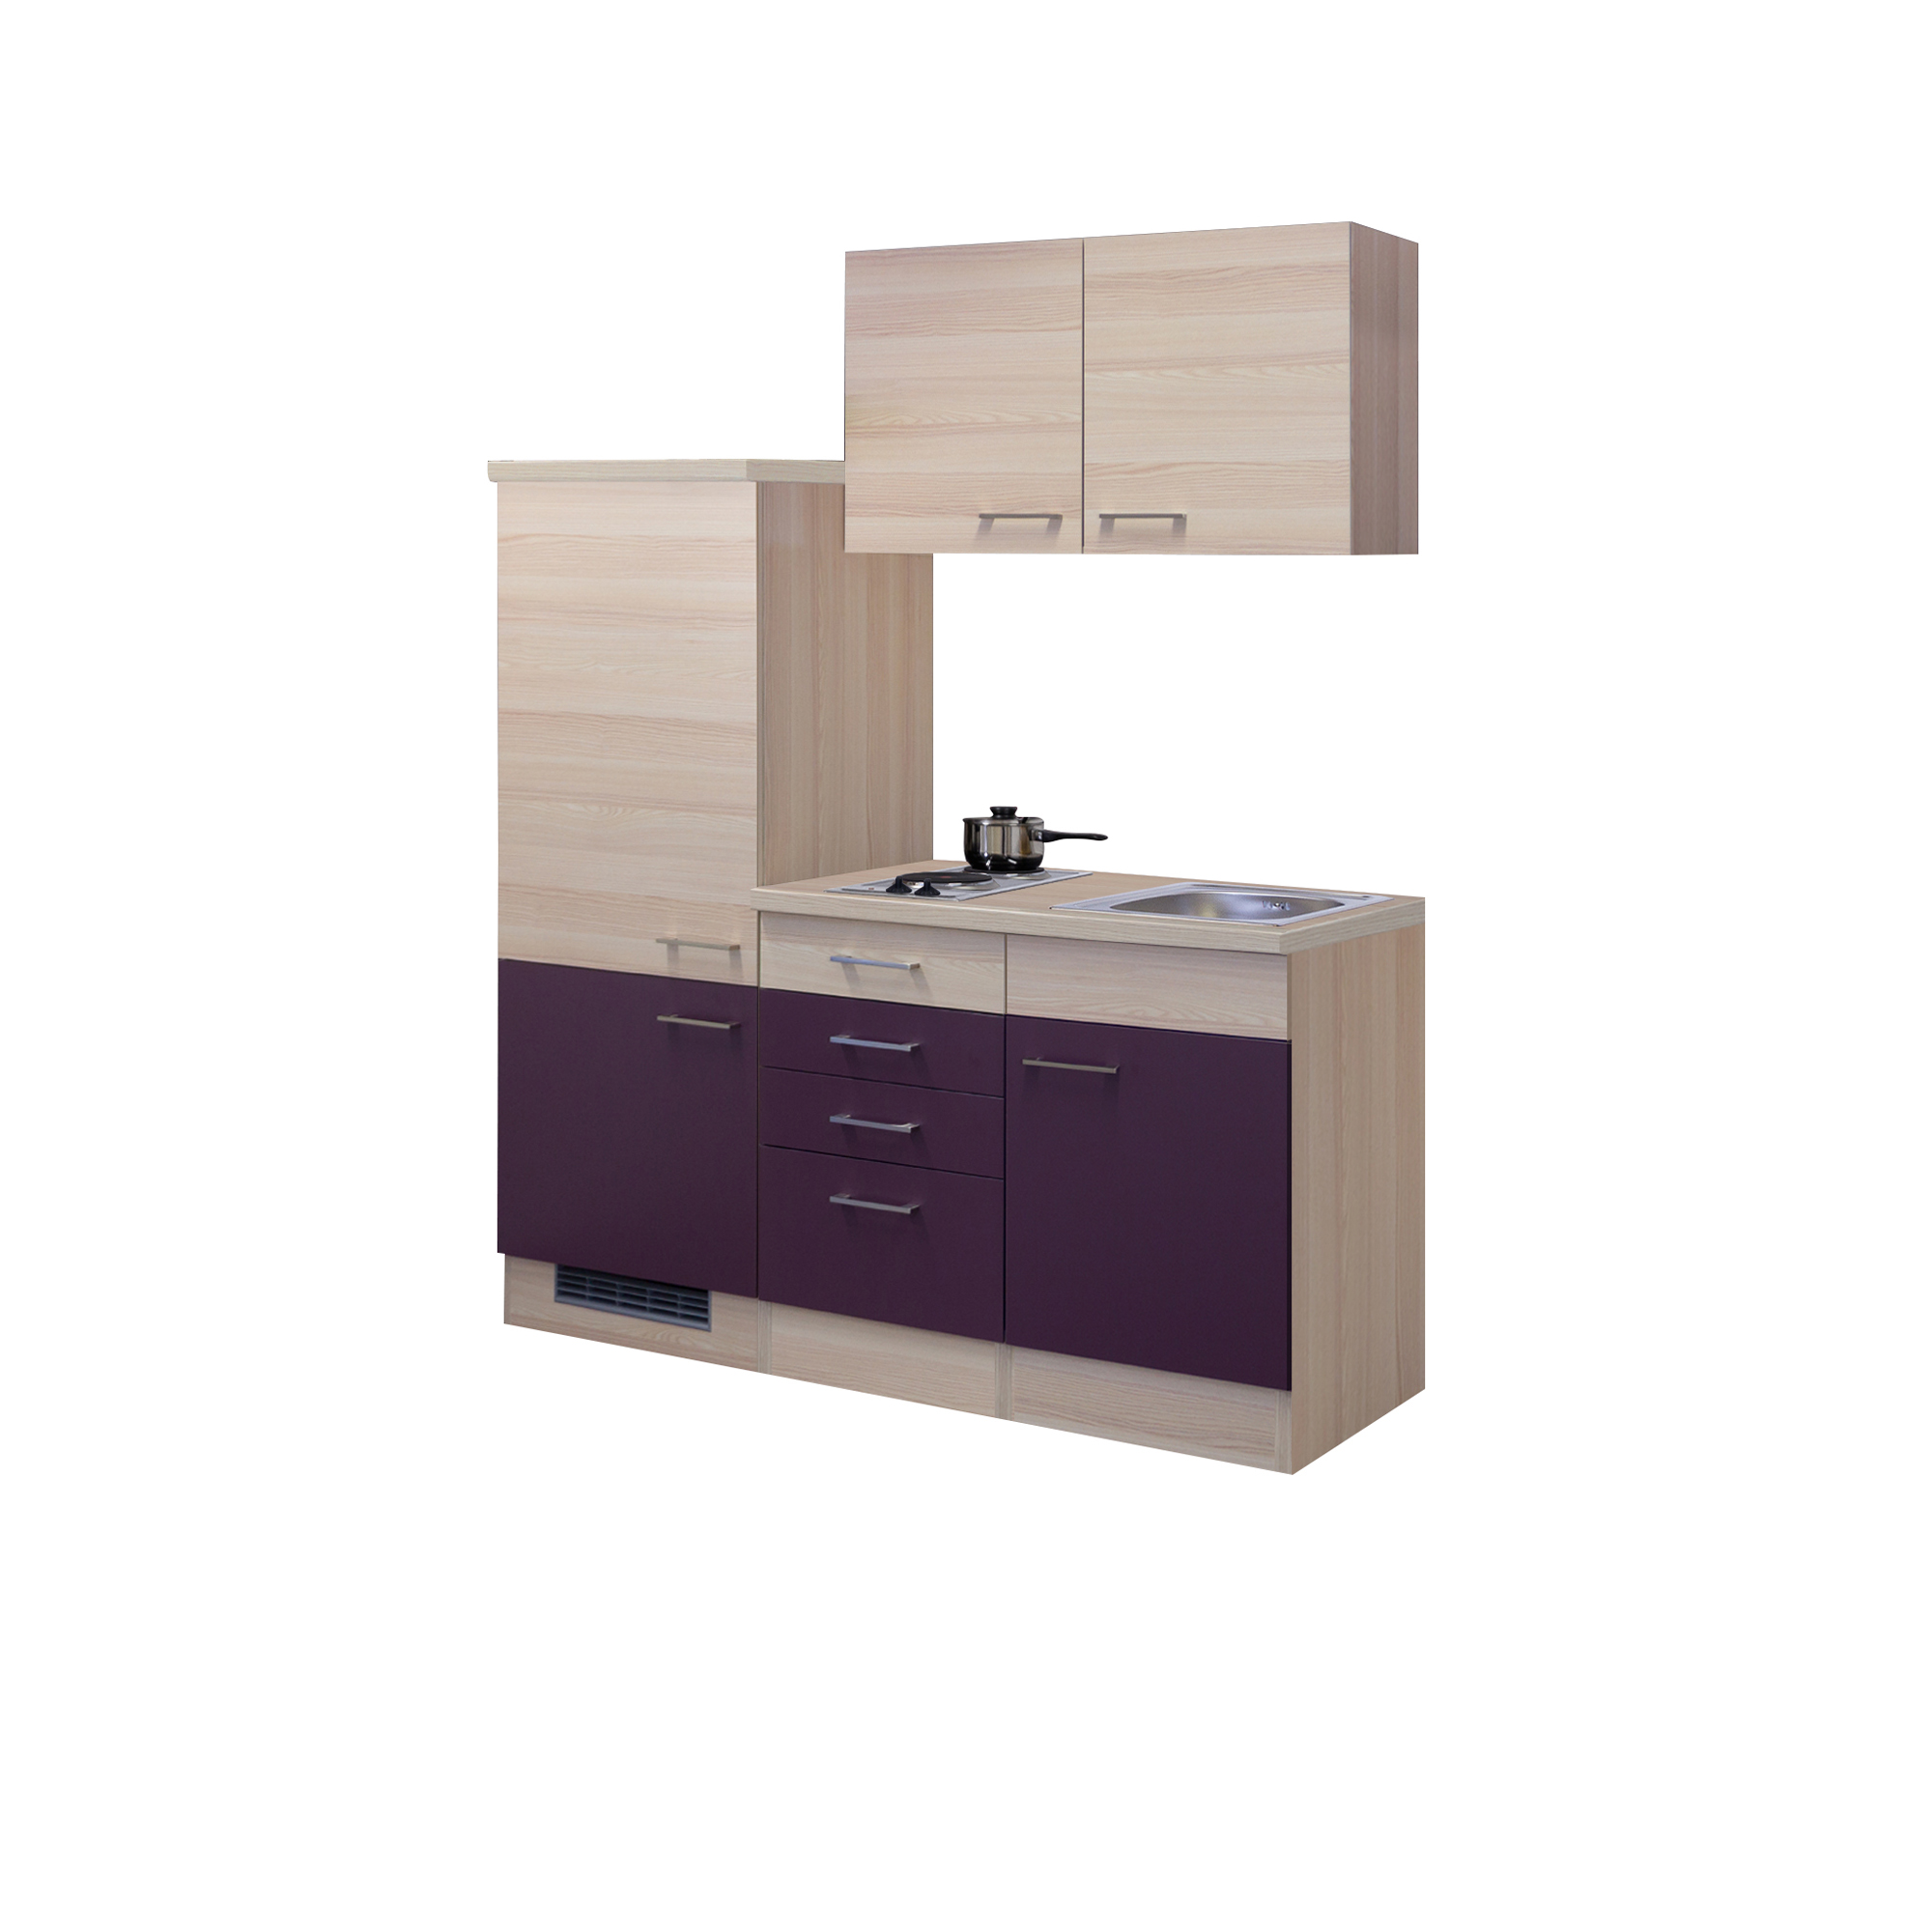 singlek che focus breite 160 cm aubergine k che singlek chen. Black Bedroom Furniture Sets. Home Design Ideas